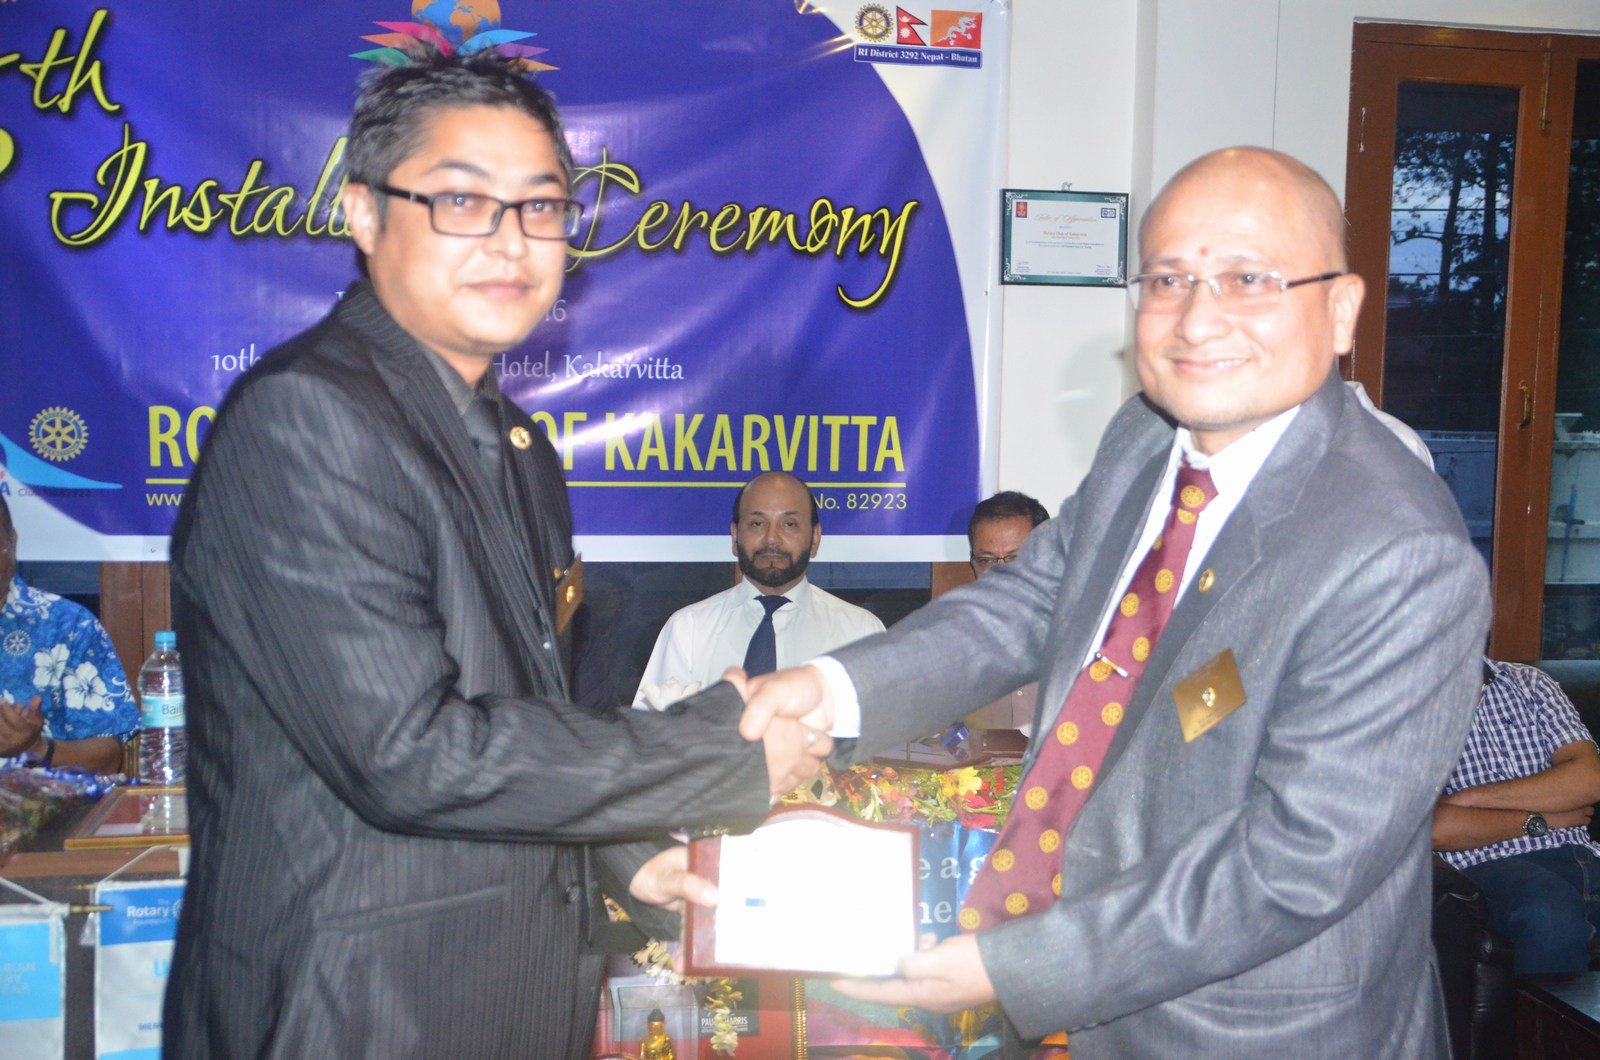 6th Installation Ceremony 2015 16 Rotary Club Of Kakarvitta 18